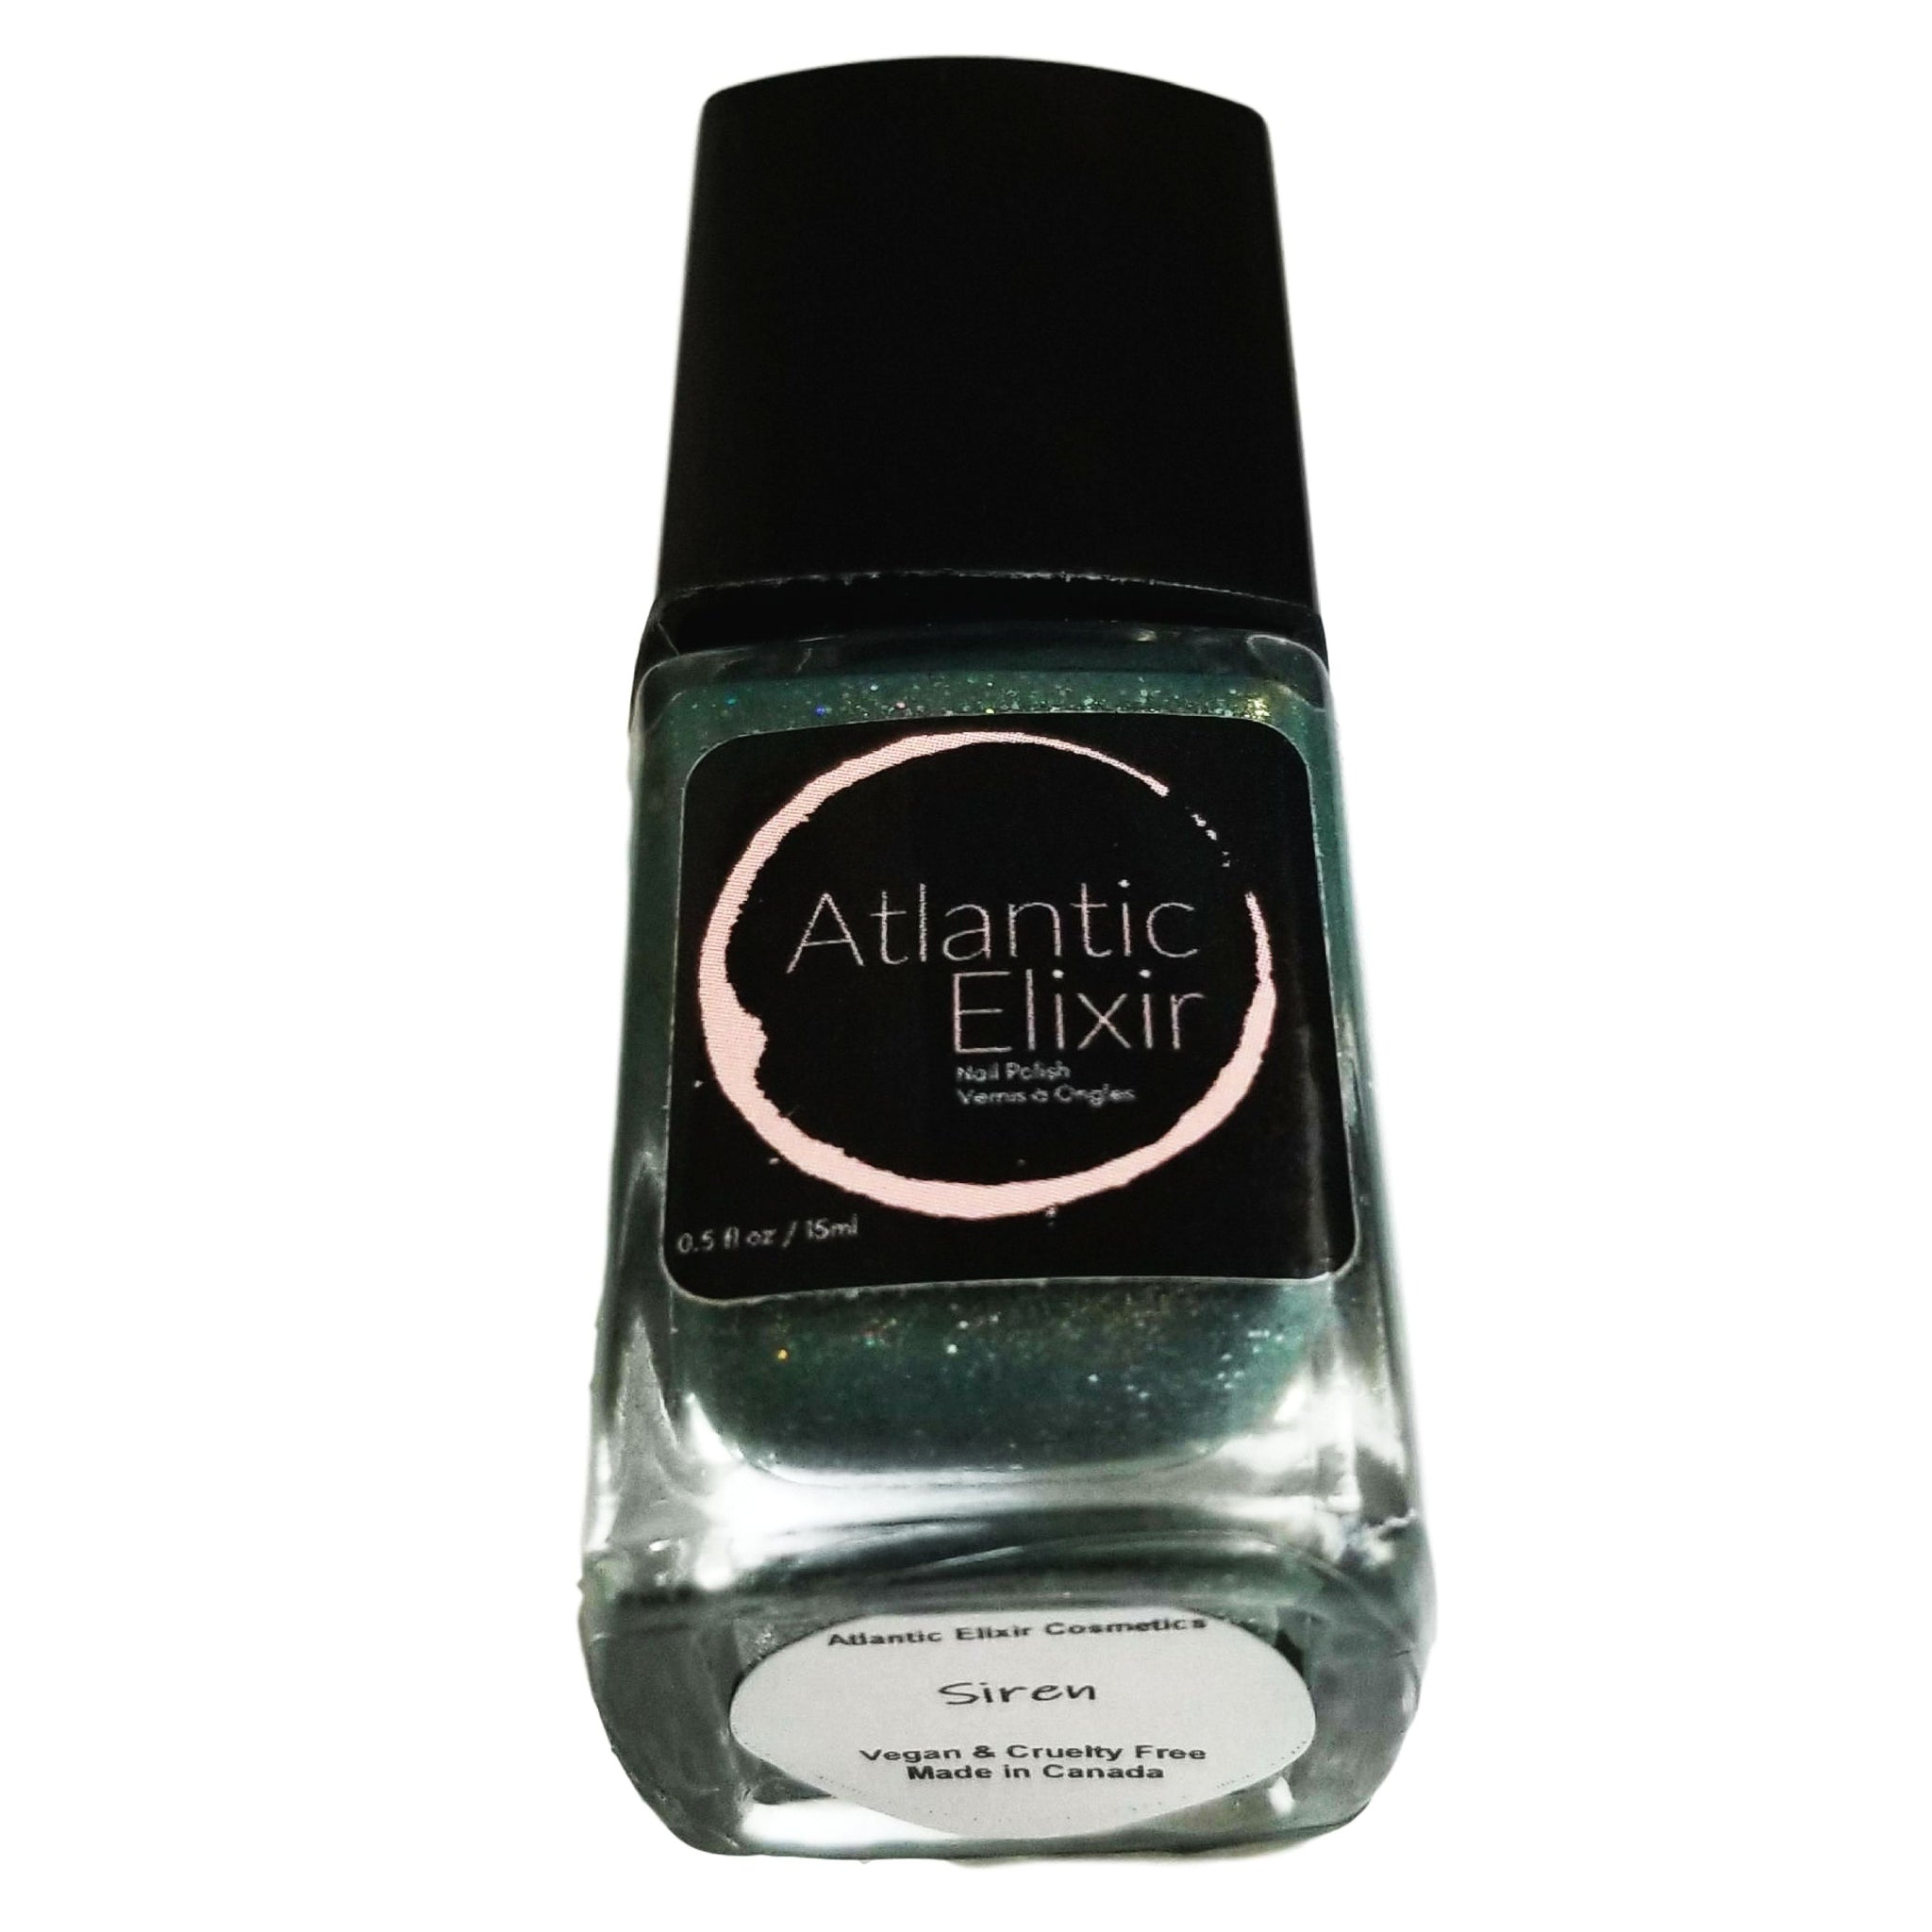 Siren | Artisan Nail Polish by Atlantic Elixir | Beware the song of the siren, sailor; for she'll lure you out to sea; and your spirit shall rest upon the waters, humming her dangerous melody. A deep blue combined with smoky green are the base tones of this shade, topped off with holographic and bold silver sparkle!